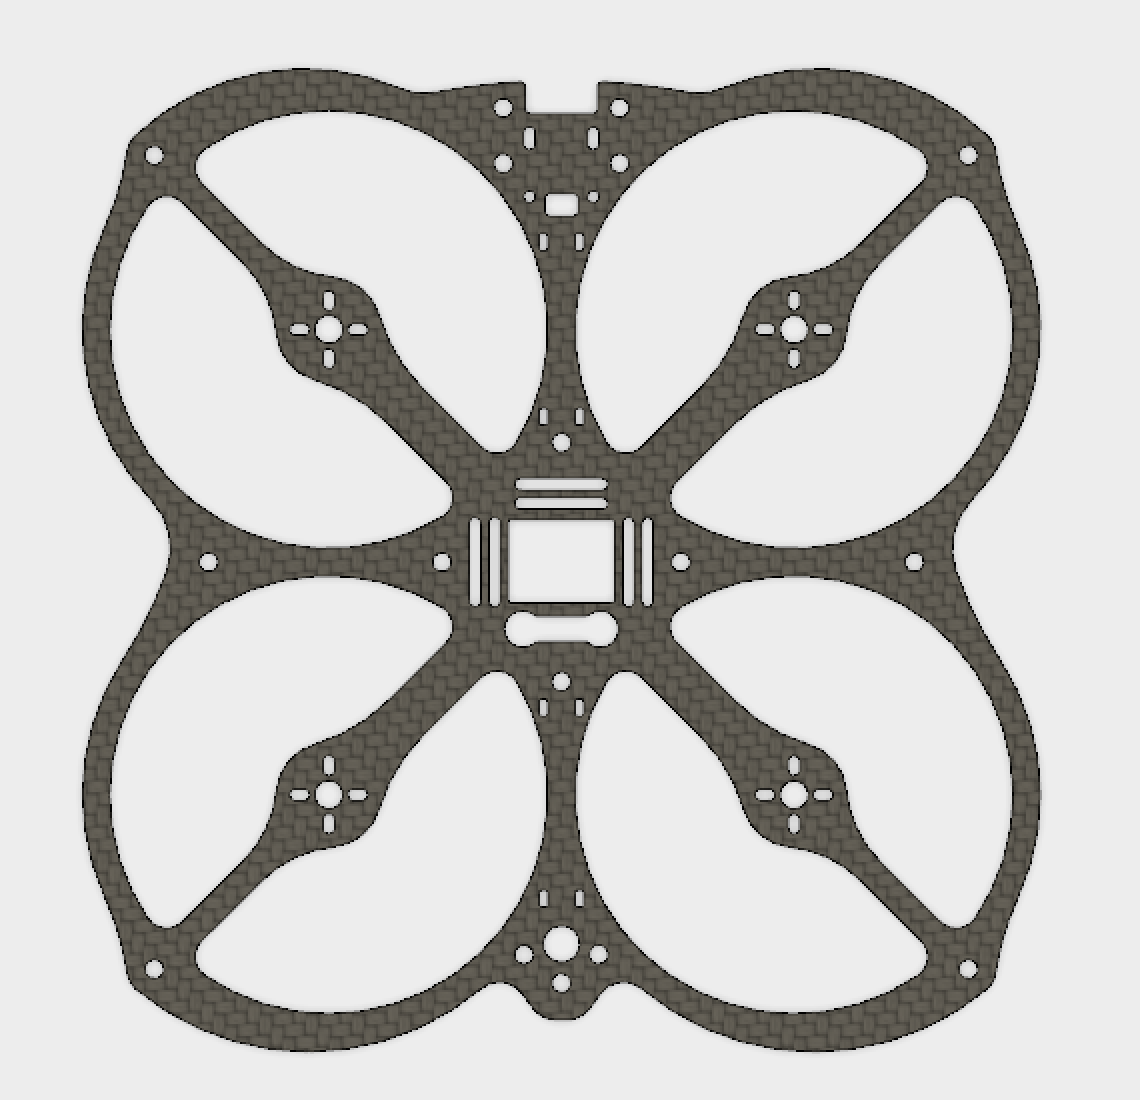 Owl - Main Plate with Motor mounts